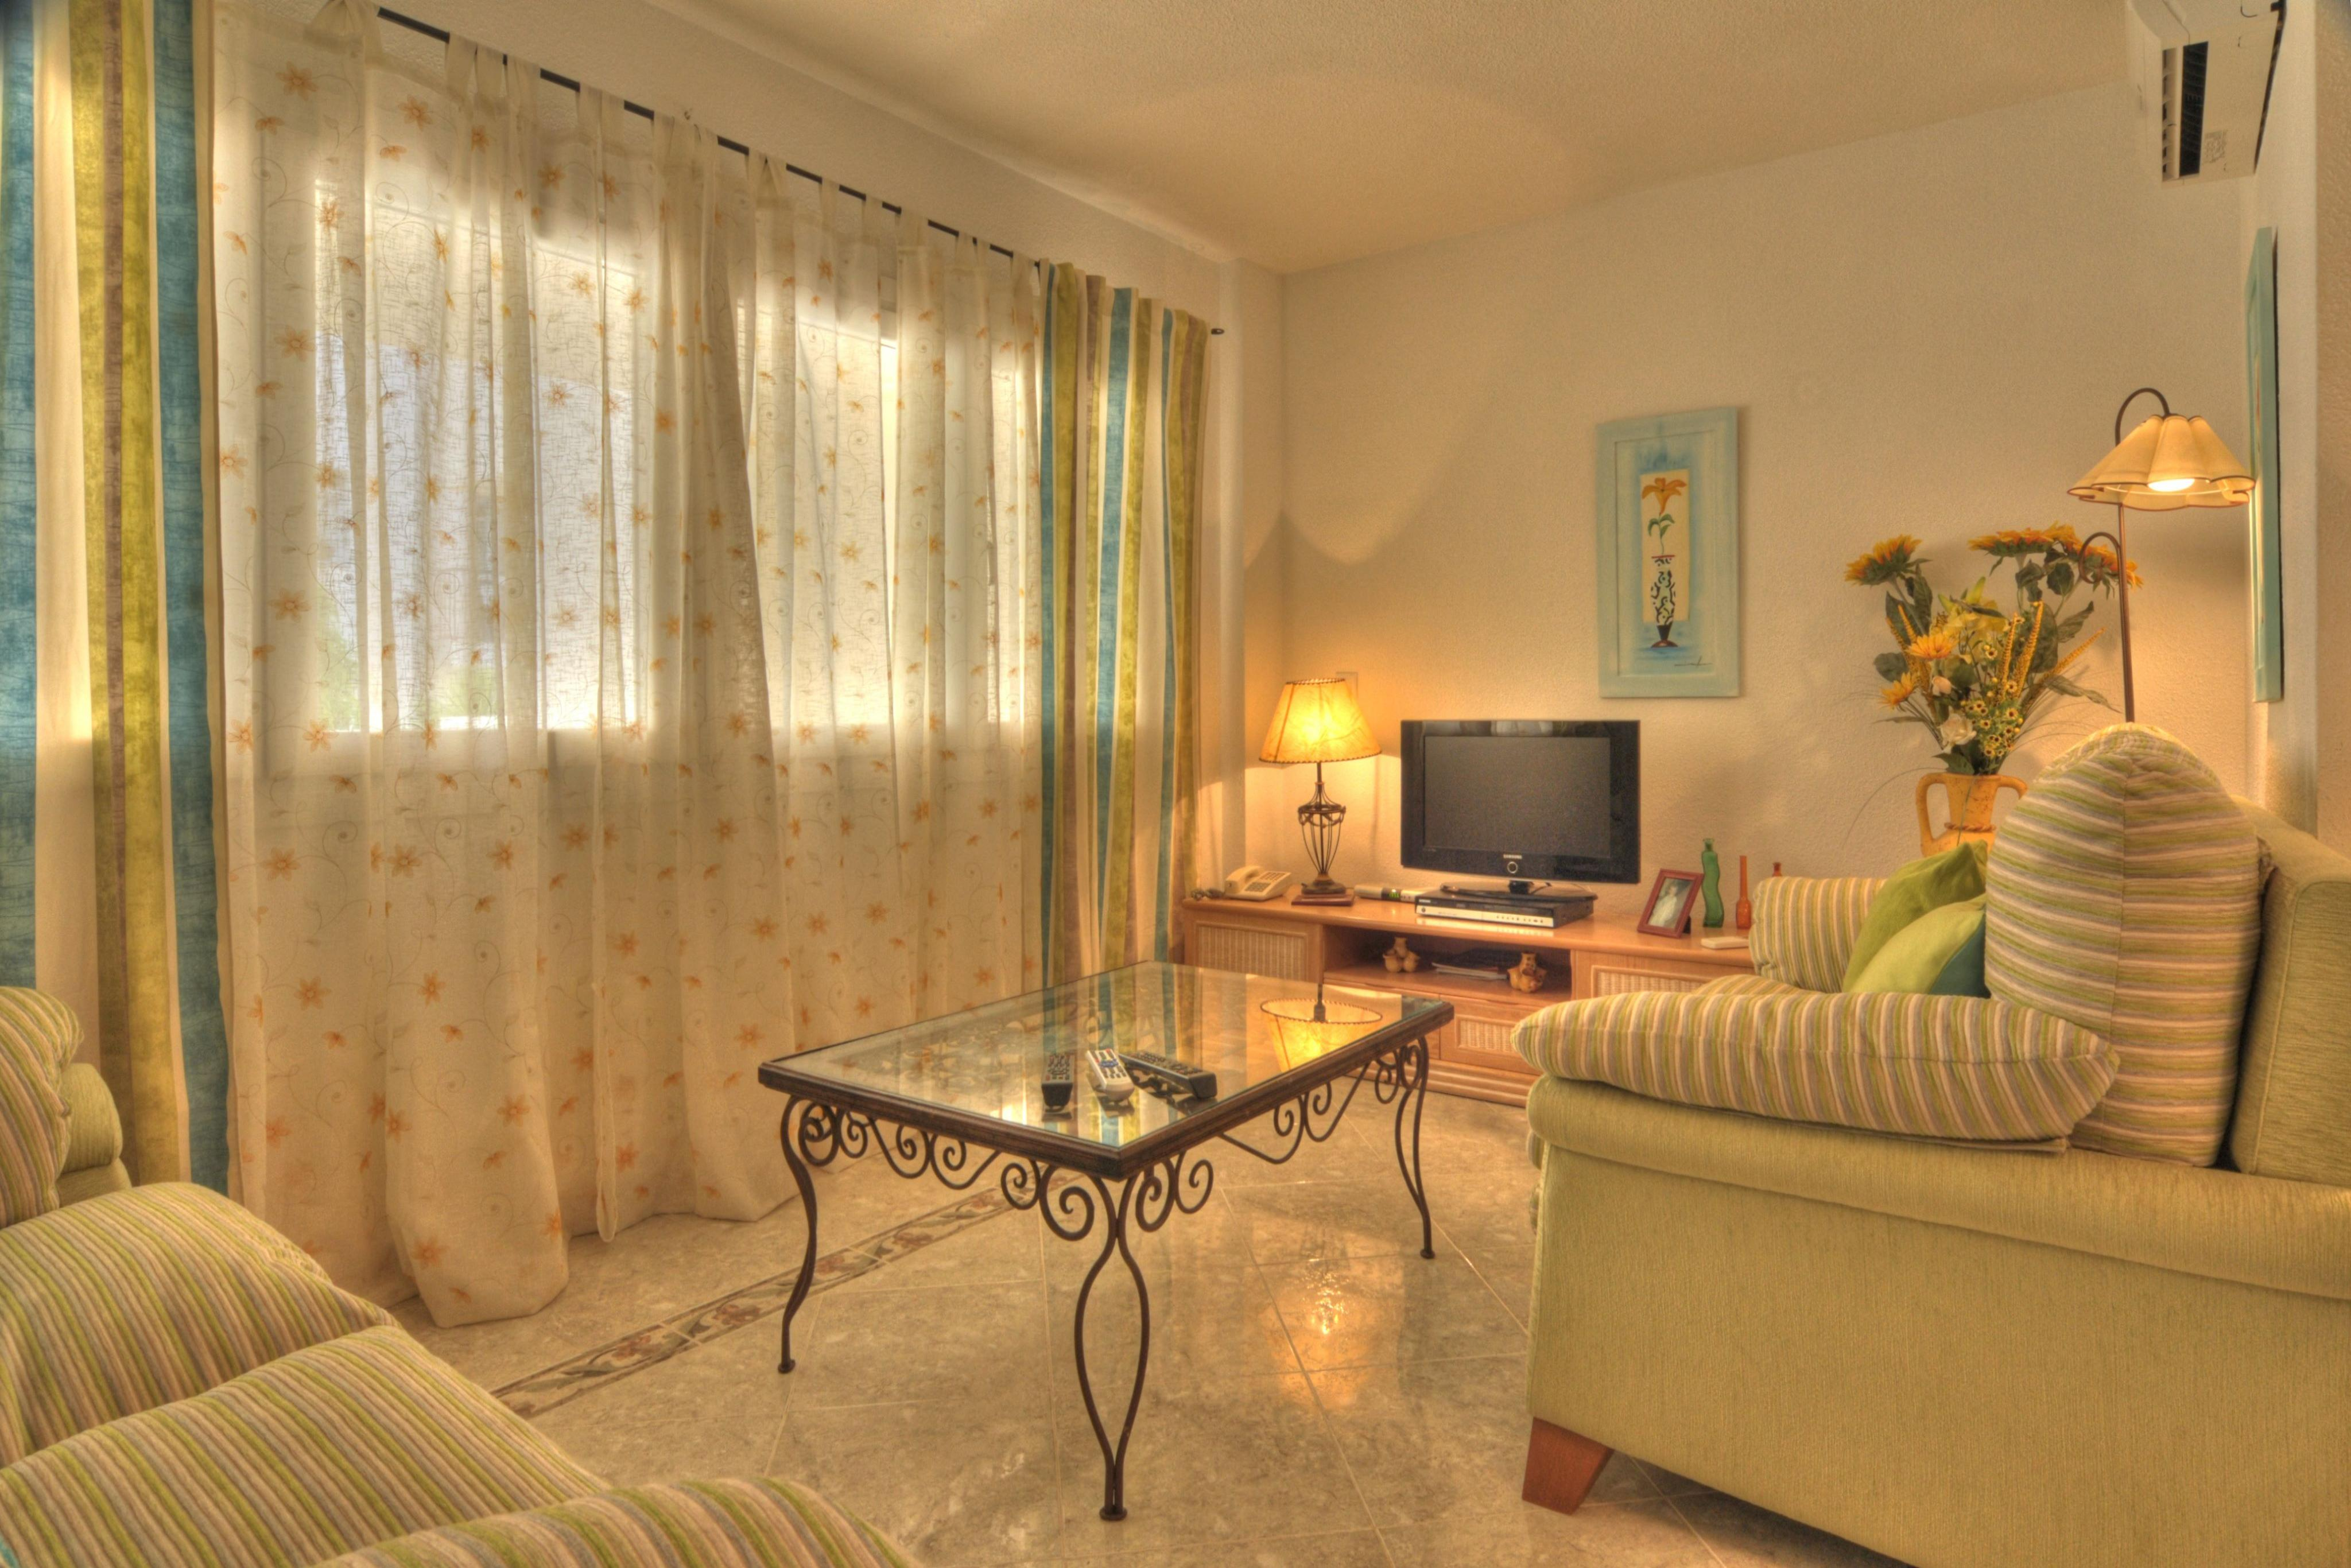 La Manga Club Resort - Bellaluz 4 1 Bedroom, for rent